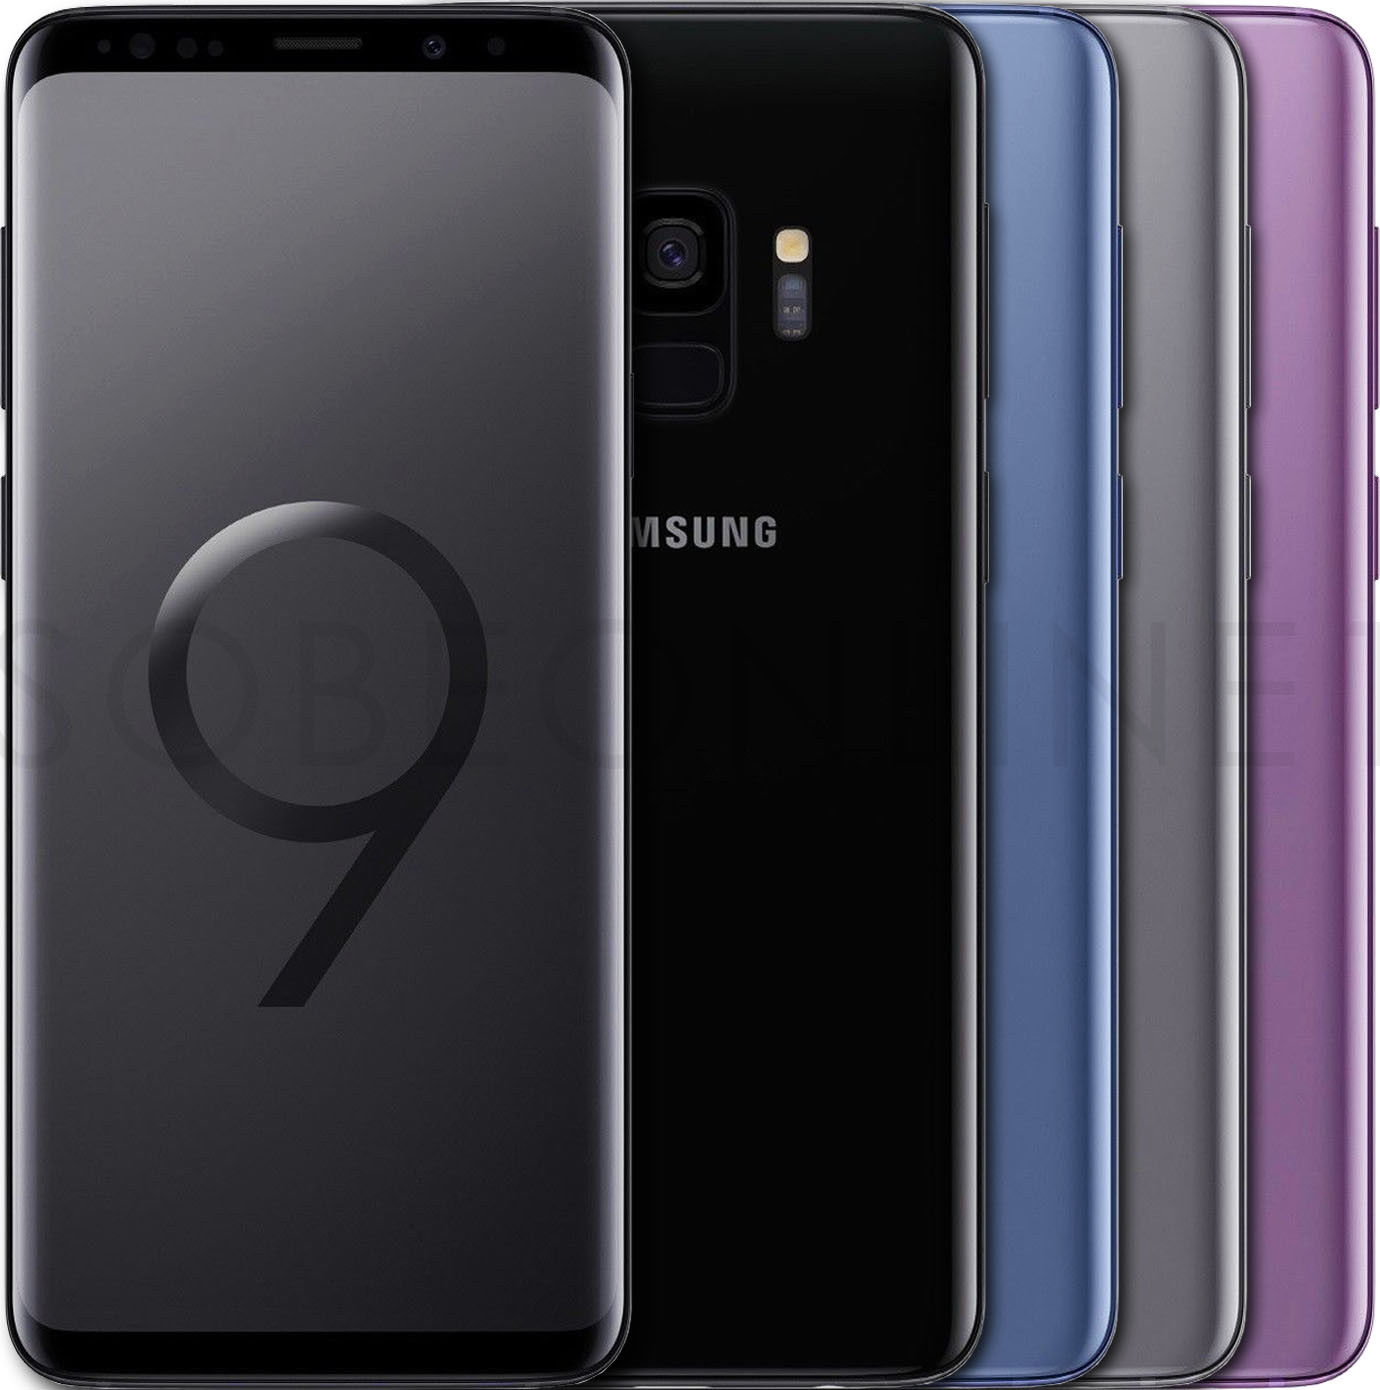 Details about Samsung Galaxy S9 128GB SM-G960F/DS Dual Sim (FACTORY  UNLOCKED) 5 8 QHD 4GB RAM